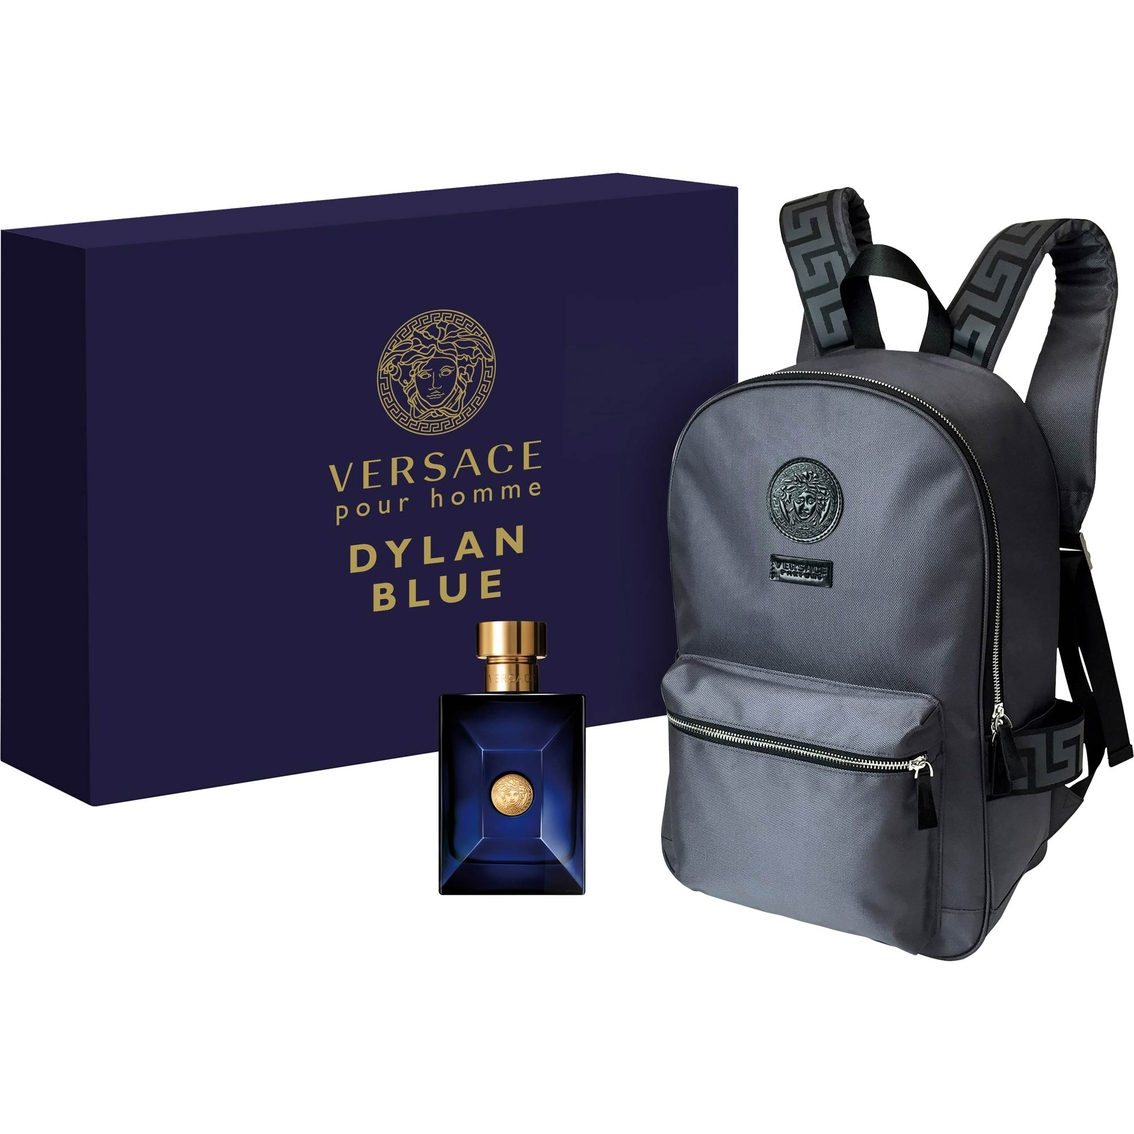 59a66199df33 Versace Dylan Blue Eau De Toilette And Backpack Gift Set